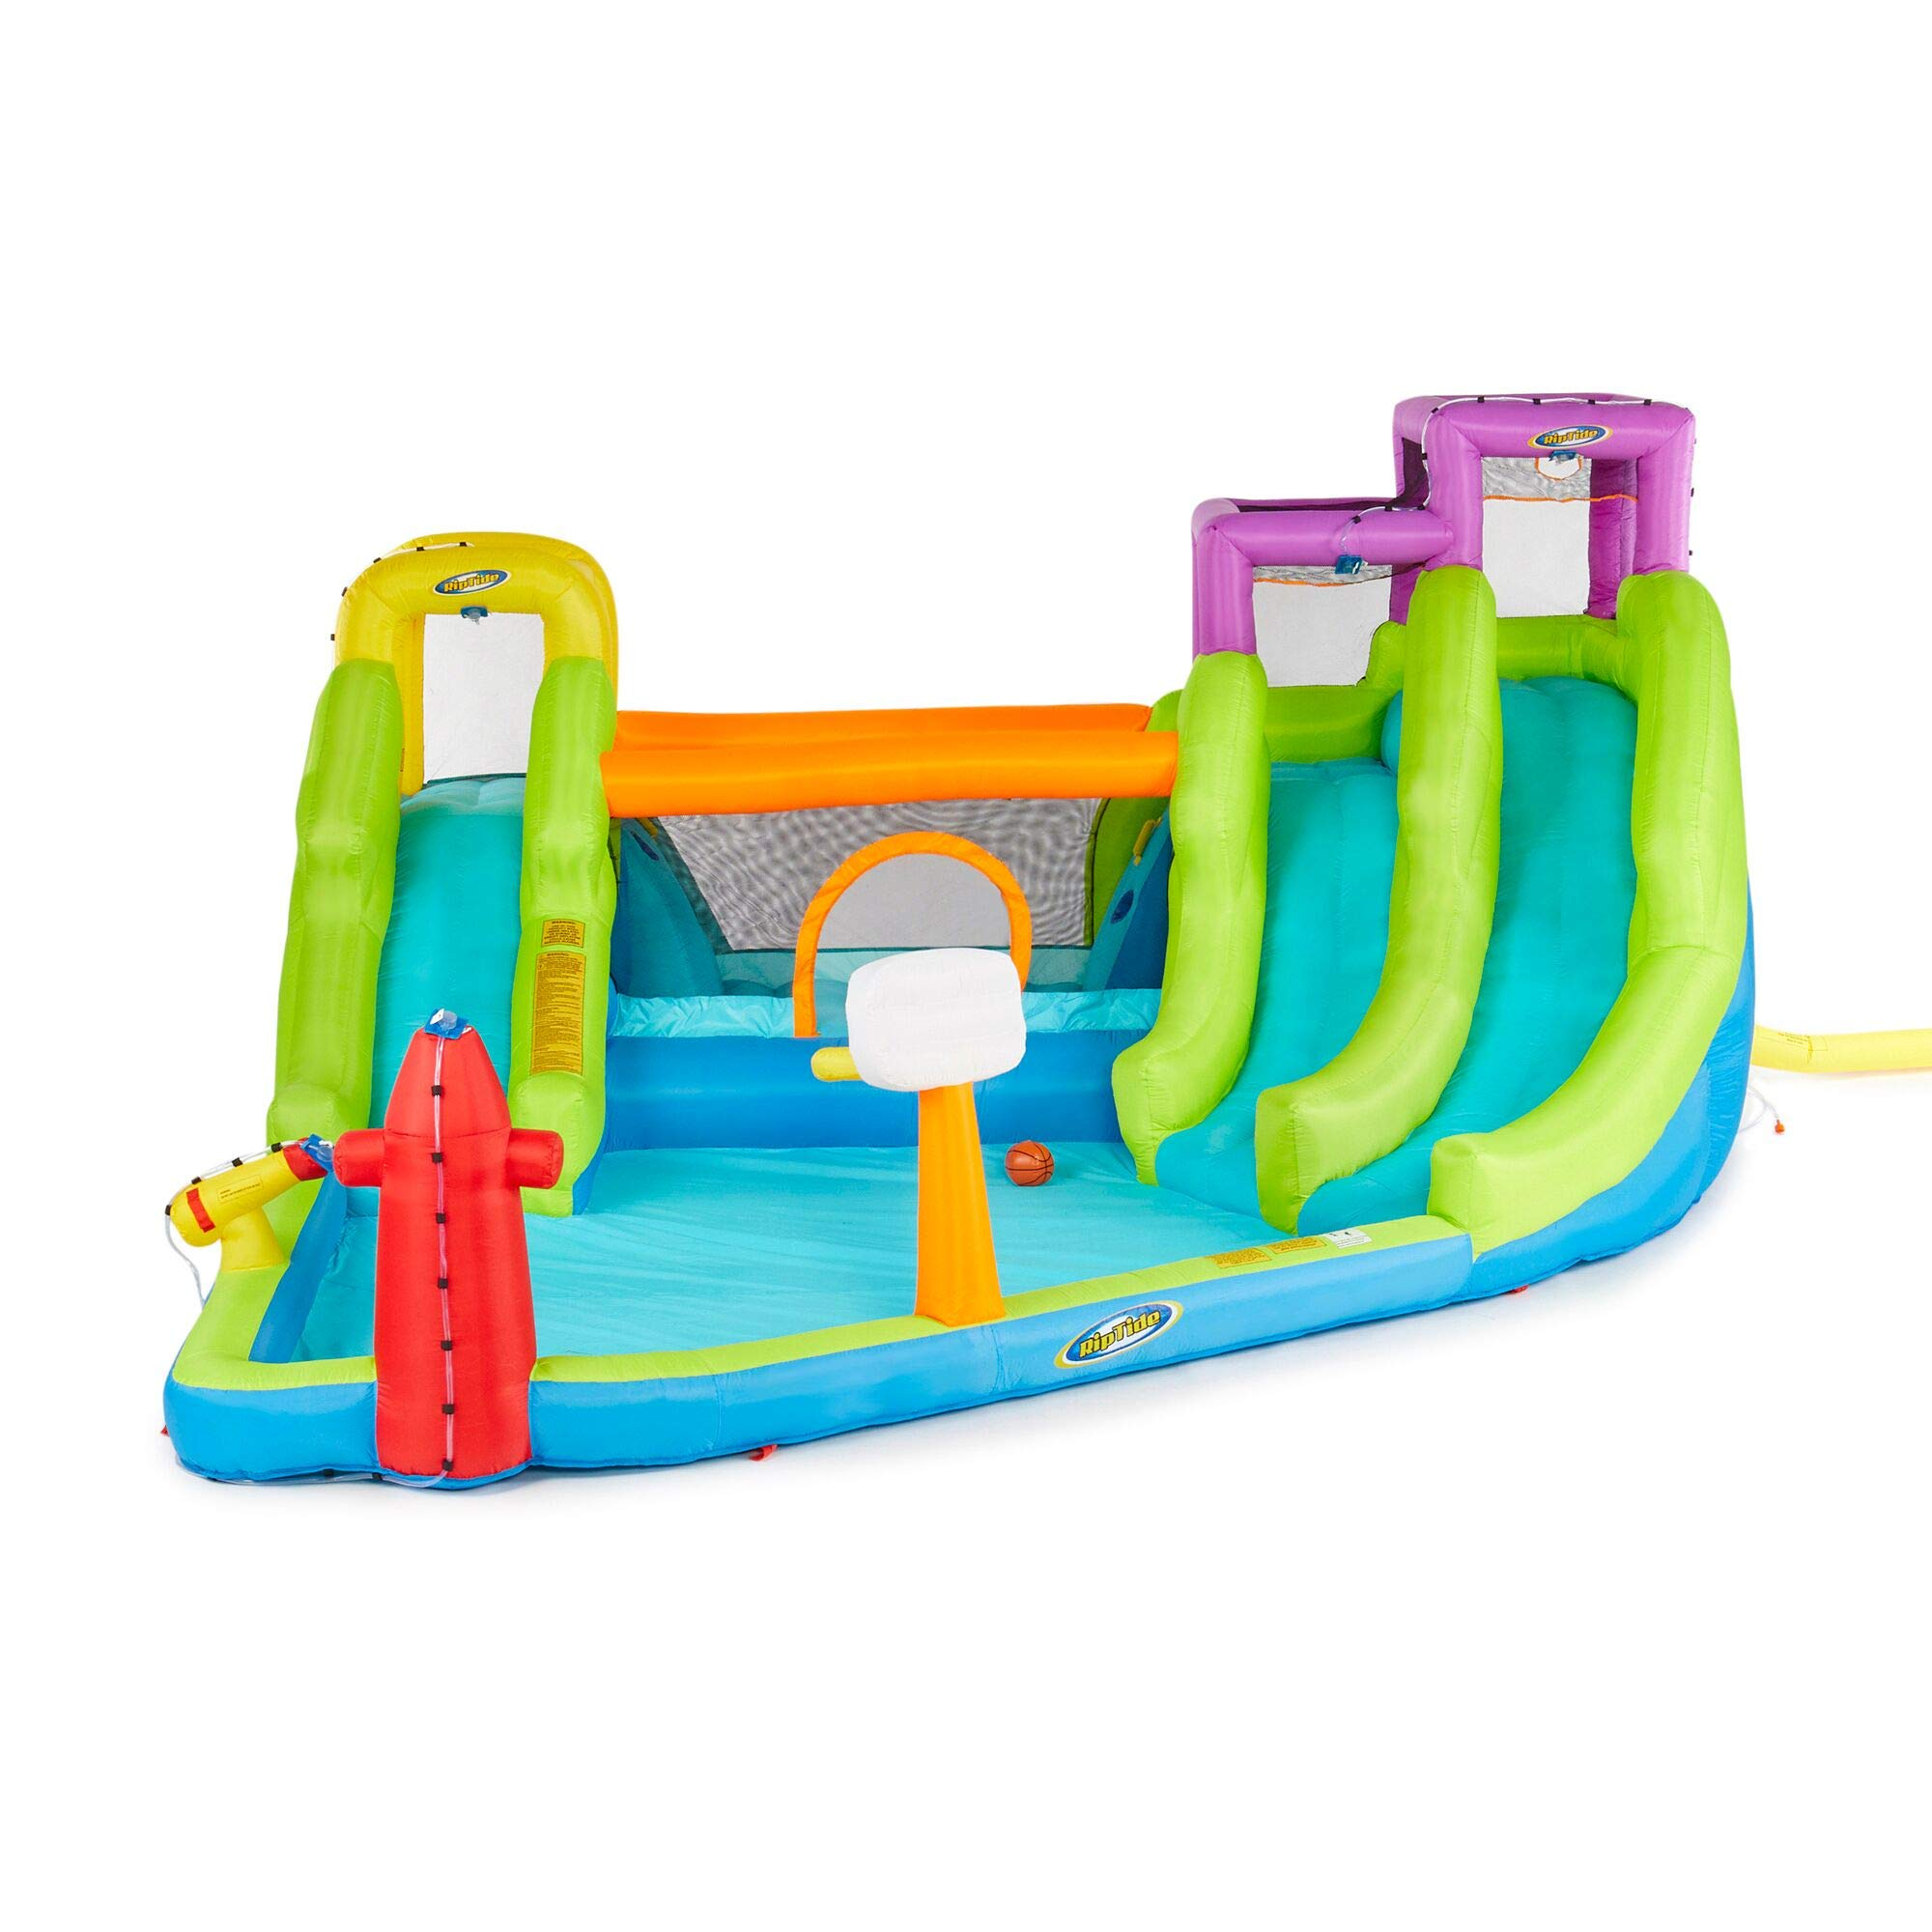 Riptide Triple Fun Inflatable PVC Water Park with 3 Slides & Obstacle Course by Riptide (Image #1)